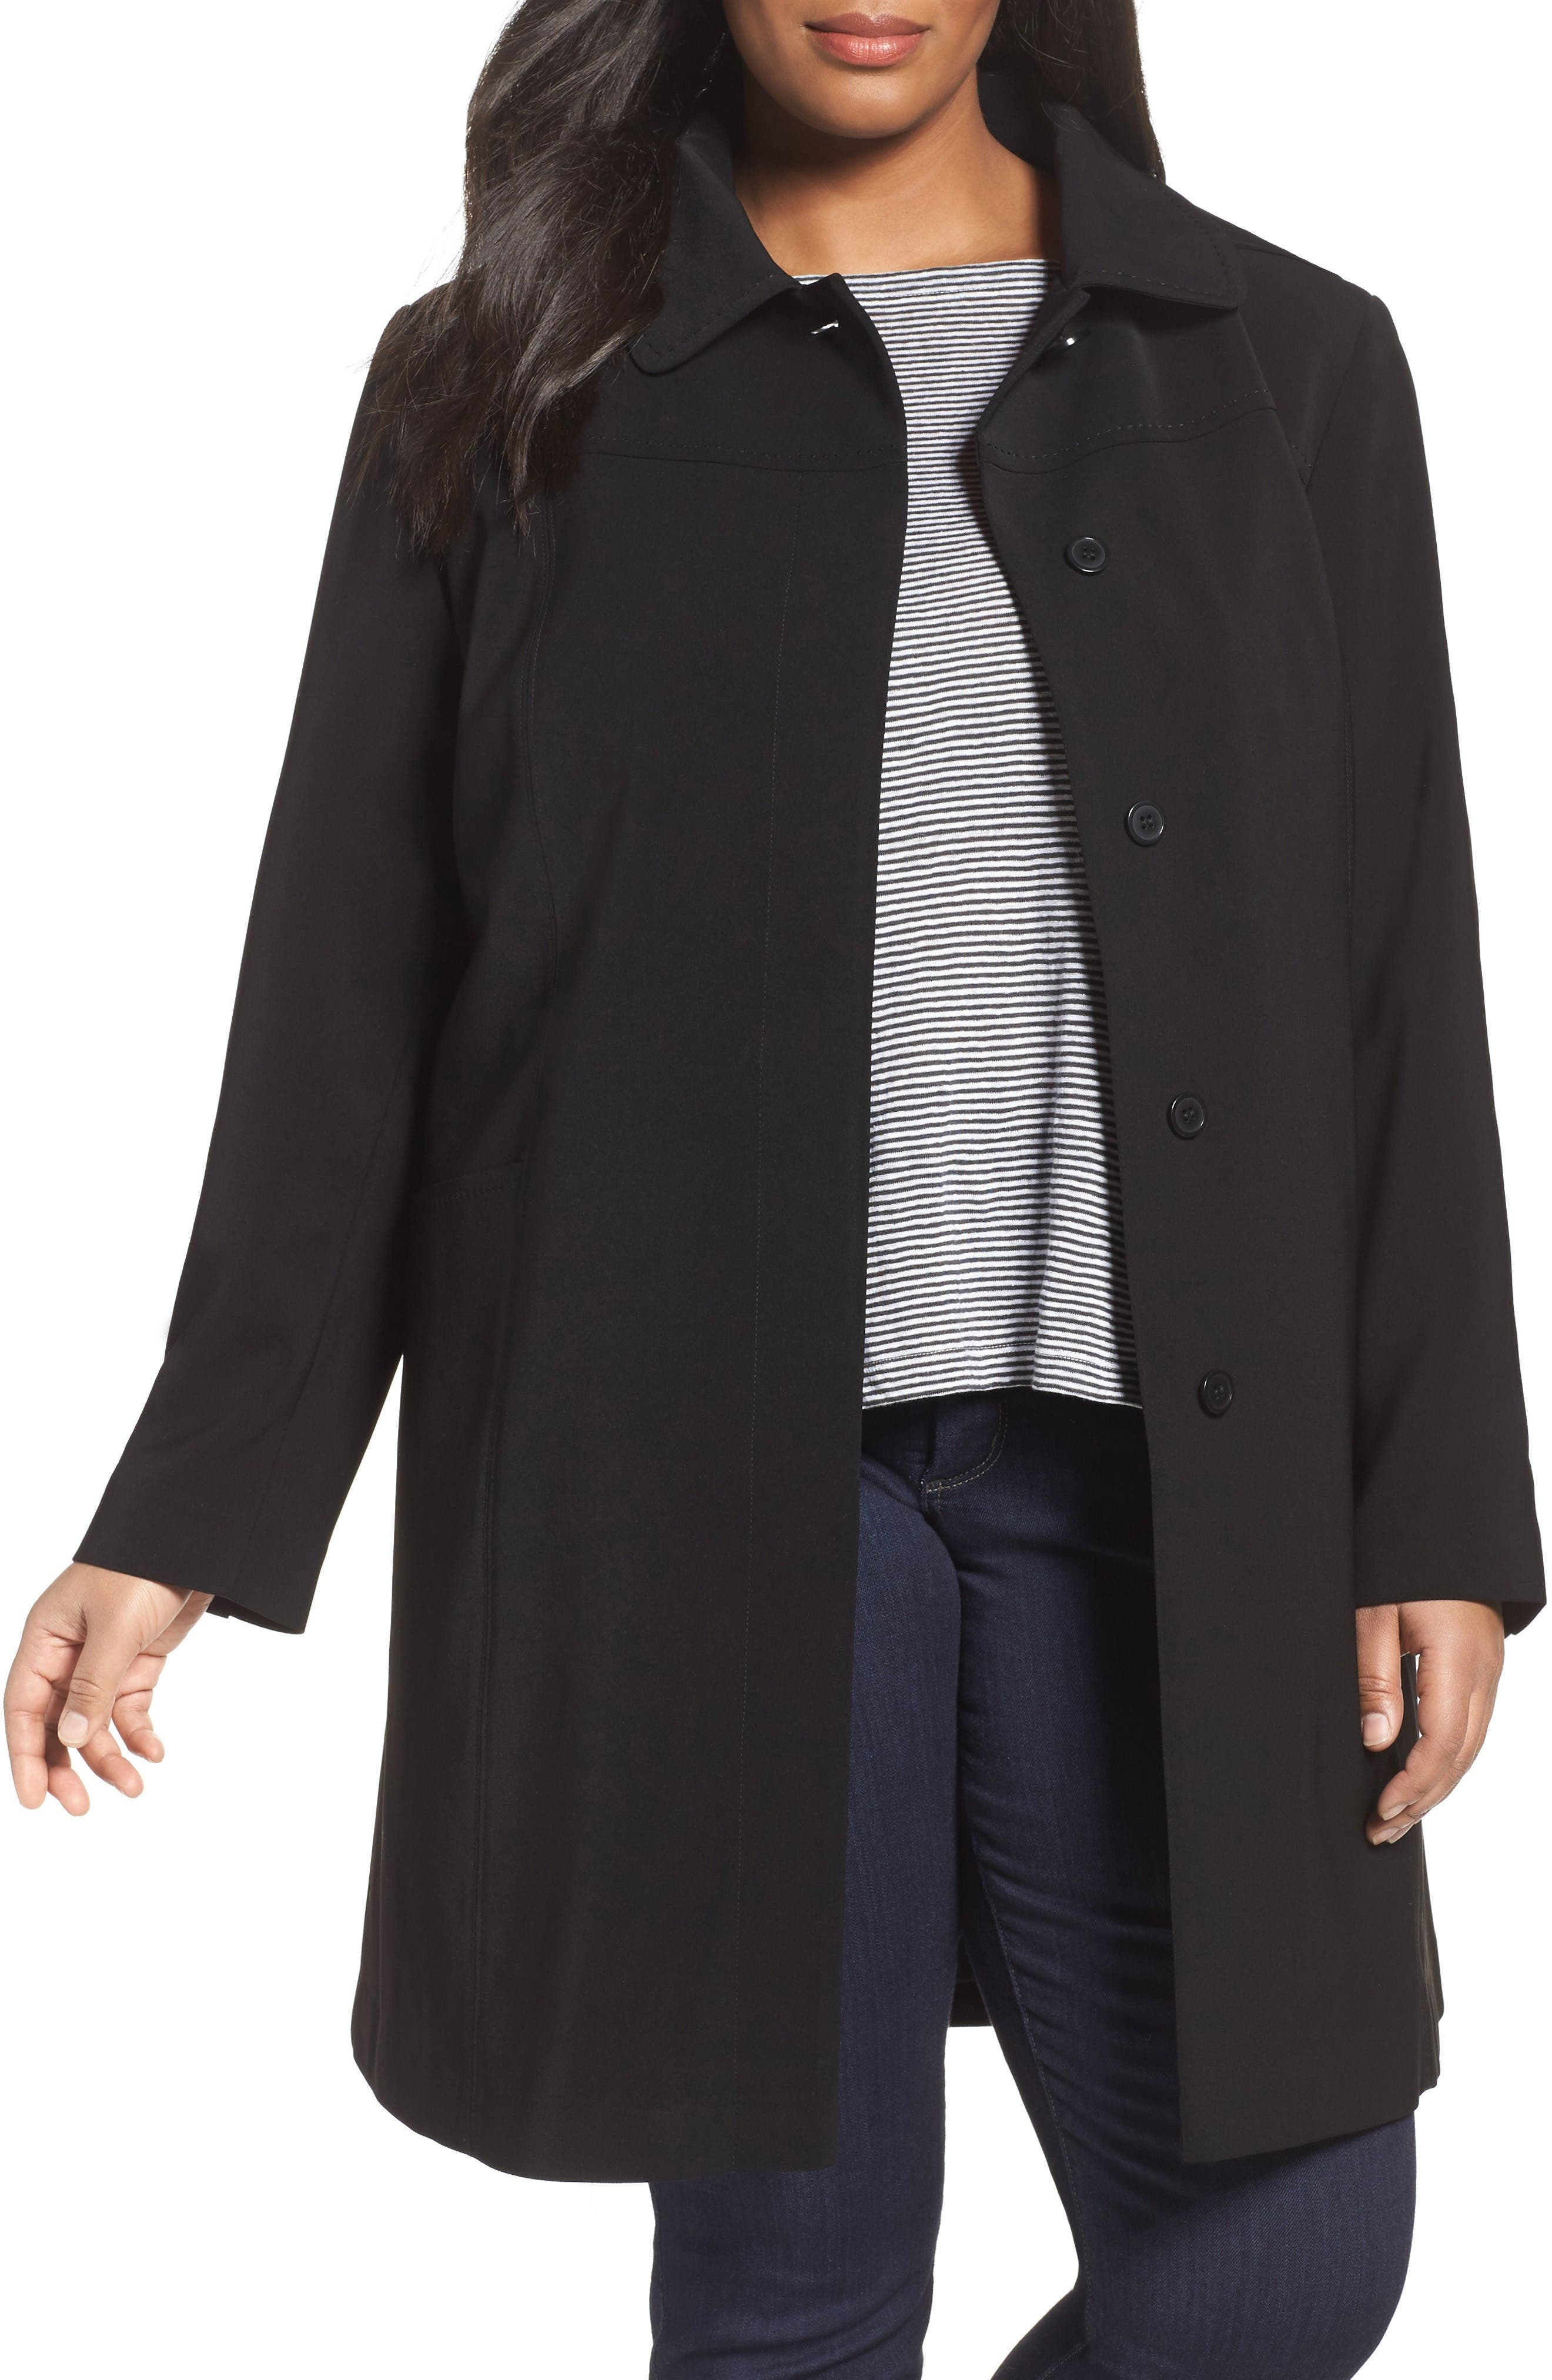 GALLERY Nepage Walking Coat with Removable Hood &